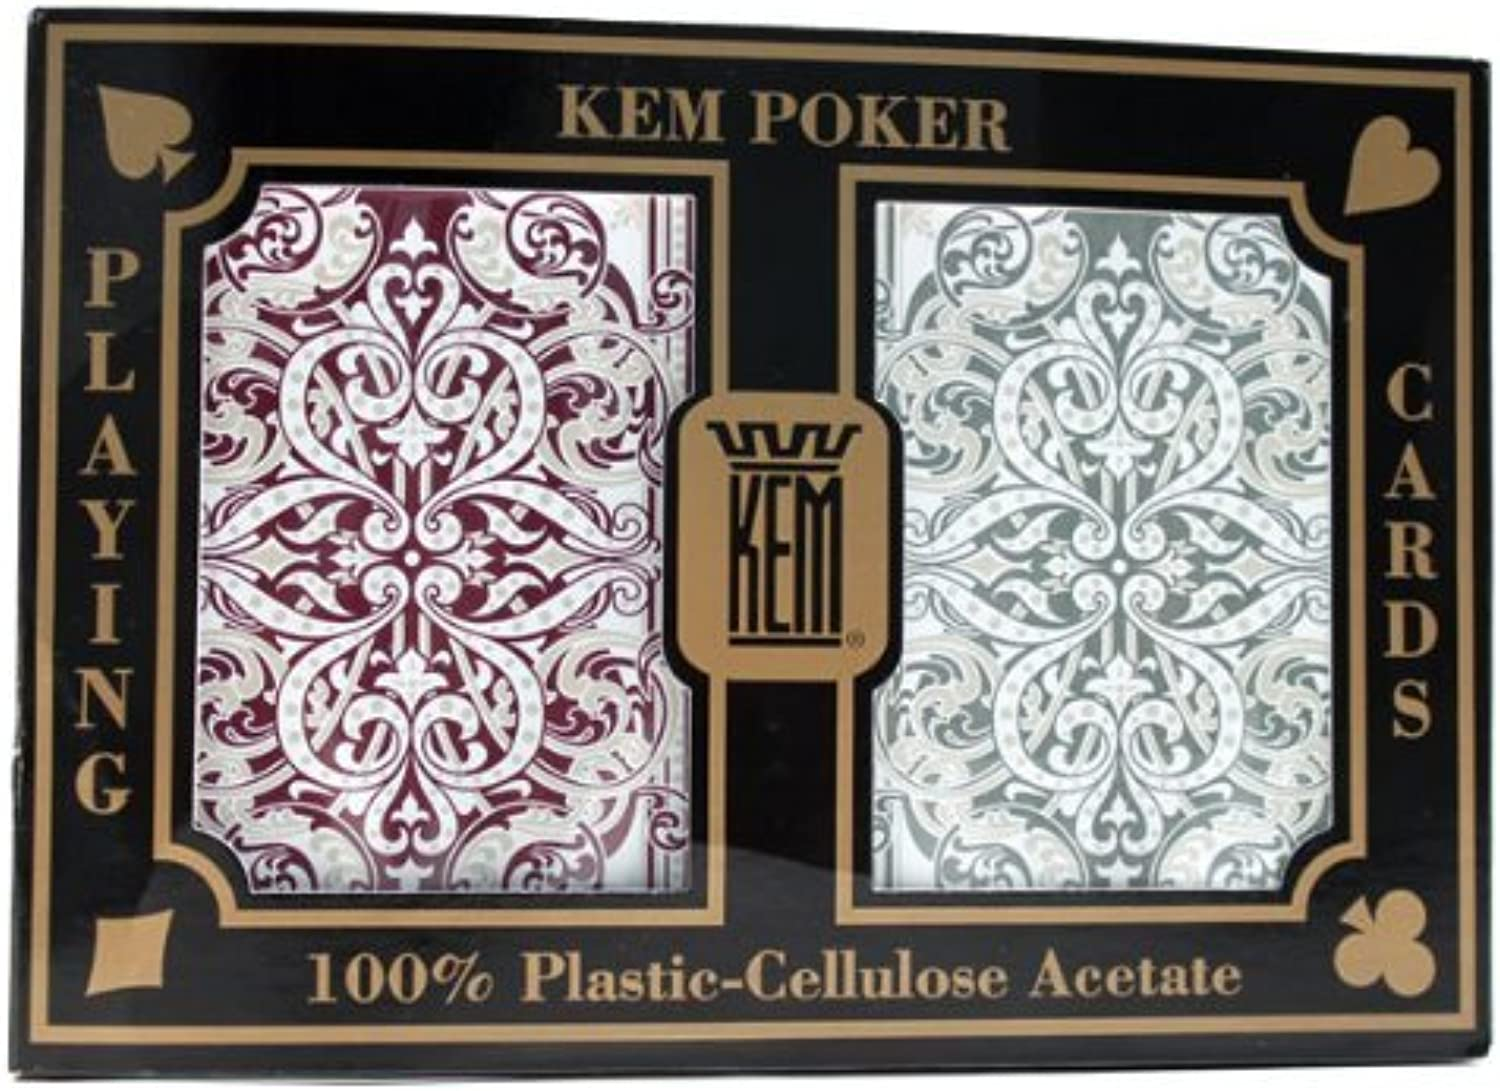 2 Deck Set of KEM Jacquard 100% Plastic Playing Cards  Comes with 2 Free Cut Cards